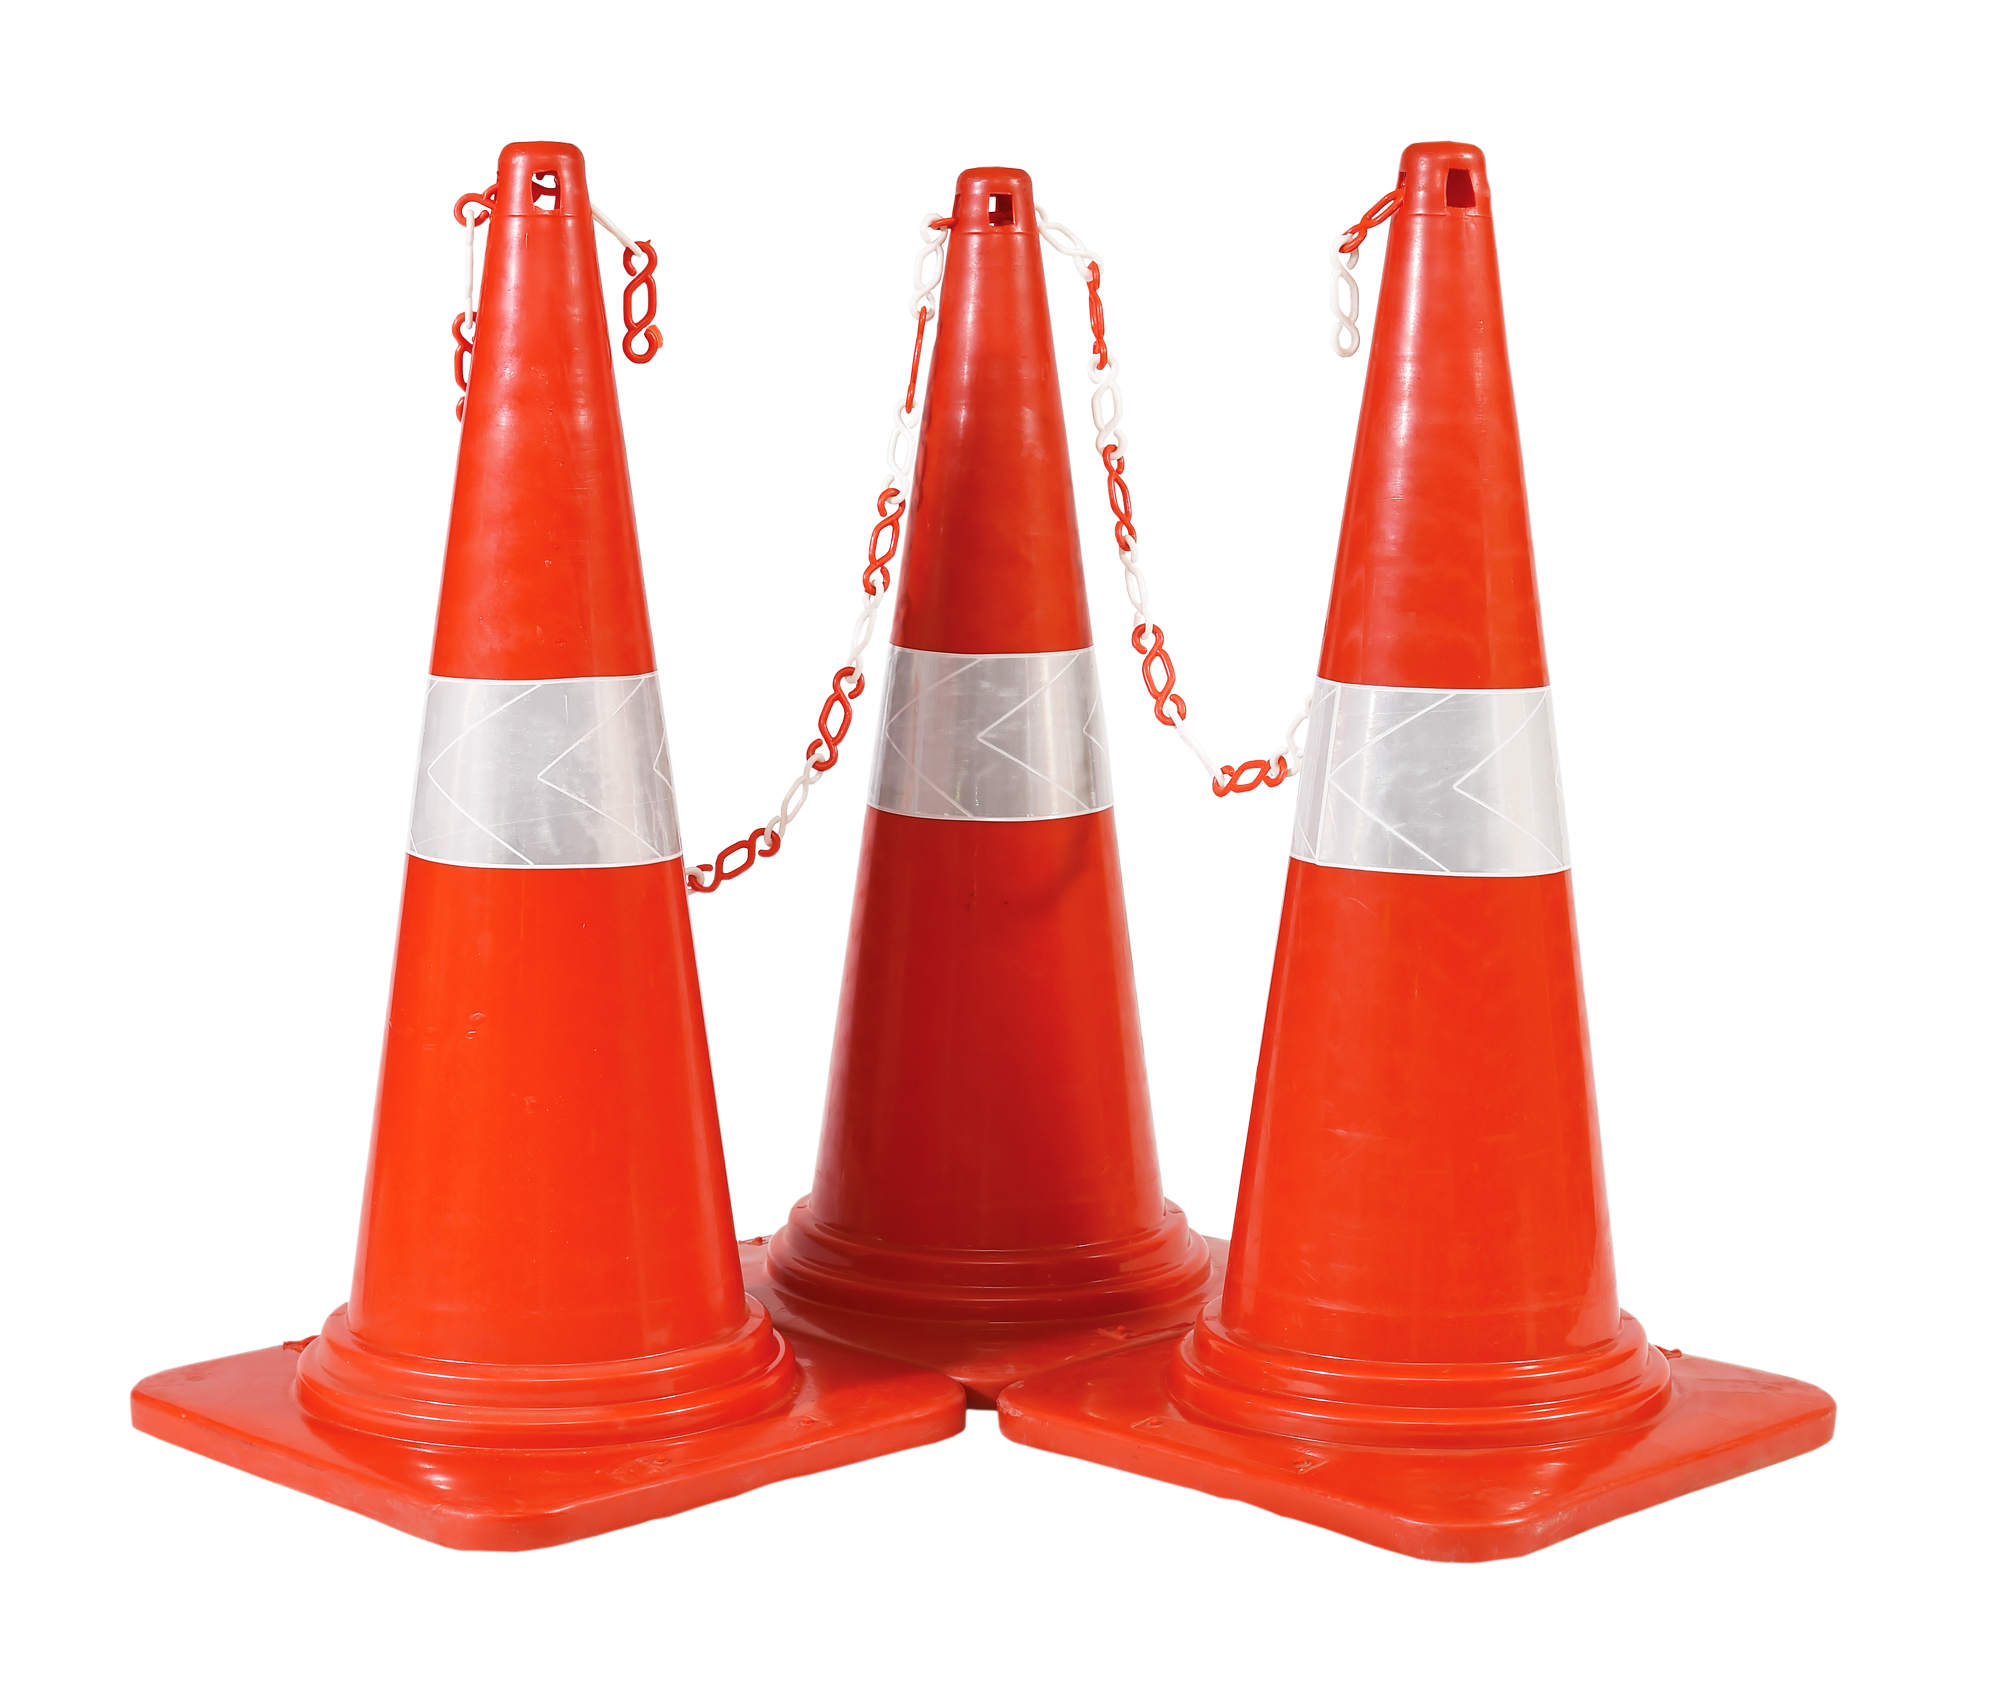 Traffic Cone PNG Transparent Image - 2089.0KB